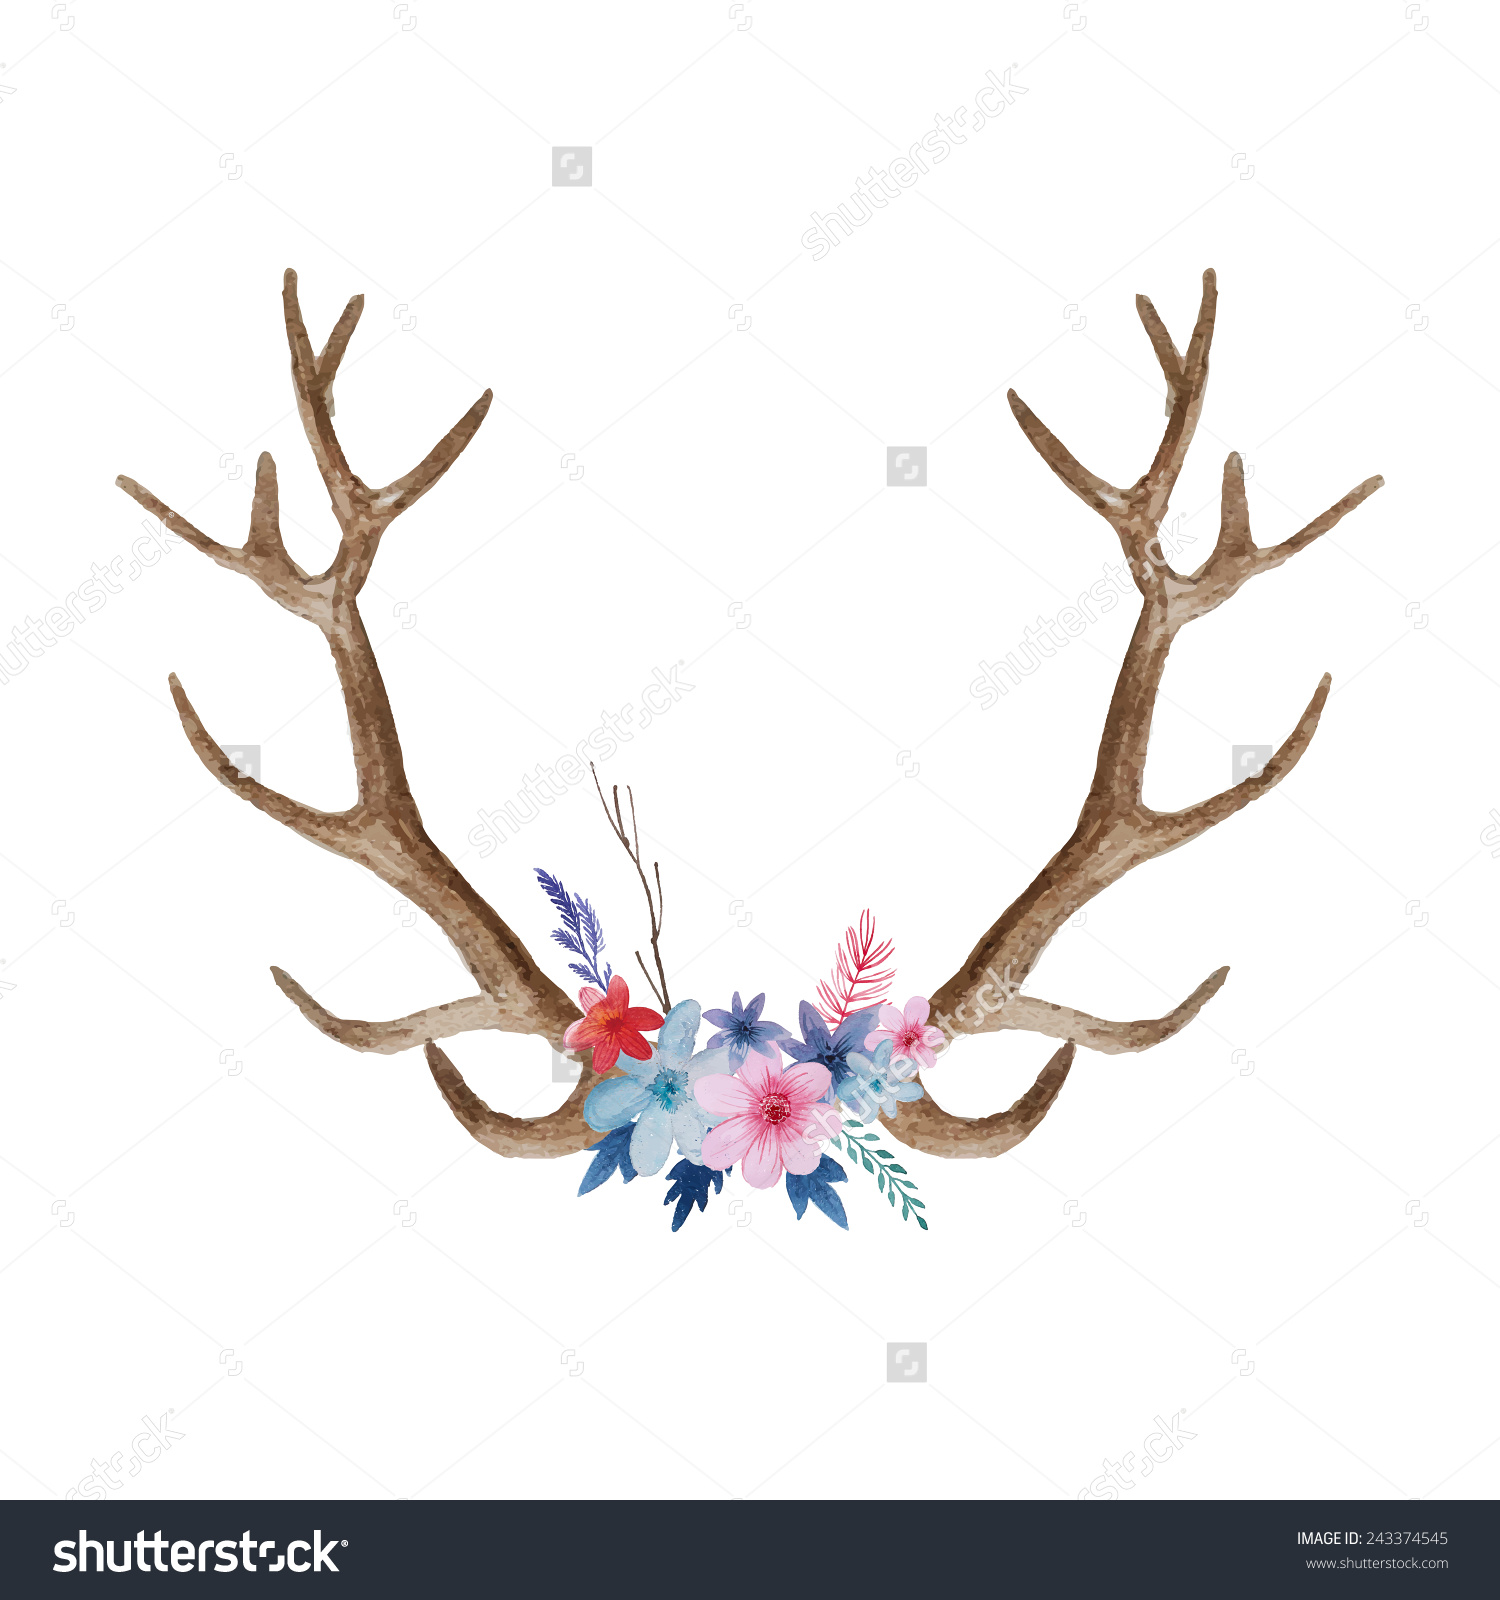 Watercolor Floral Antler Hand Drawn Vintage Stock Vector 243374545.